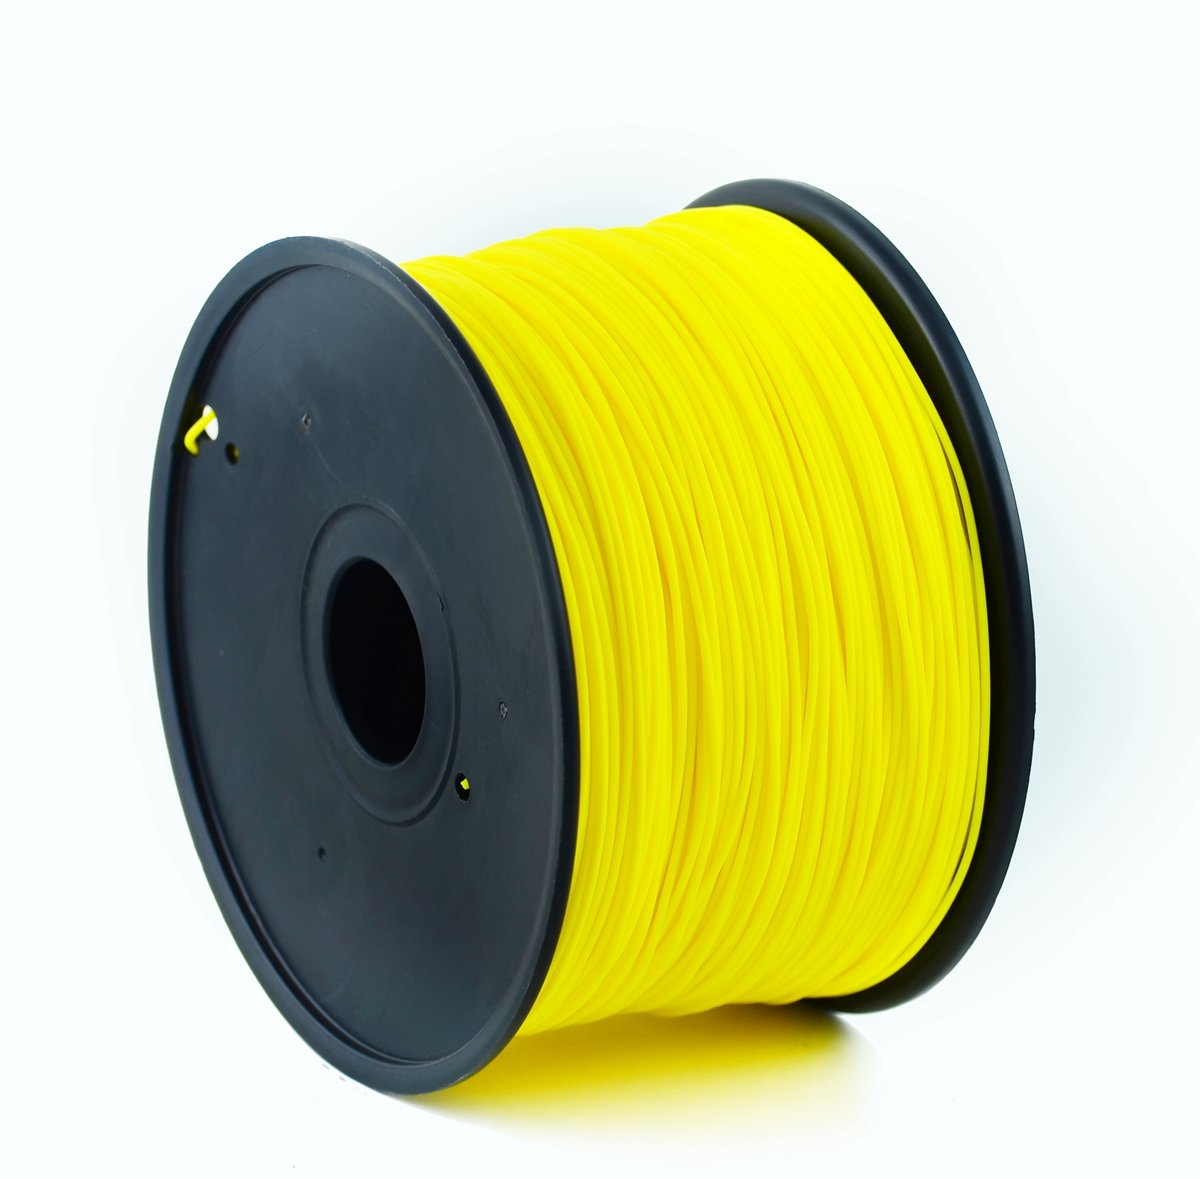 Gembird3 3DP-PLA3-01-Y - Filament PLA, 3 mm, geel